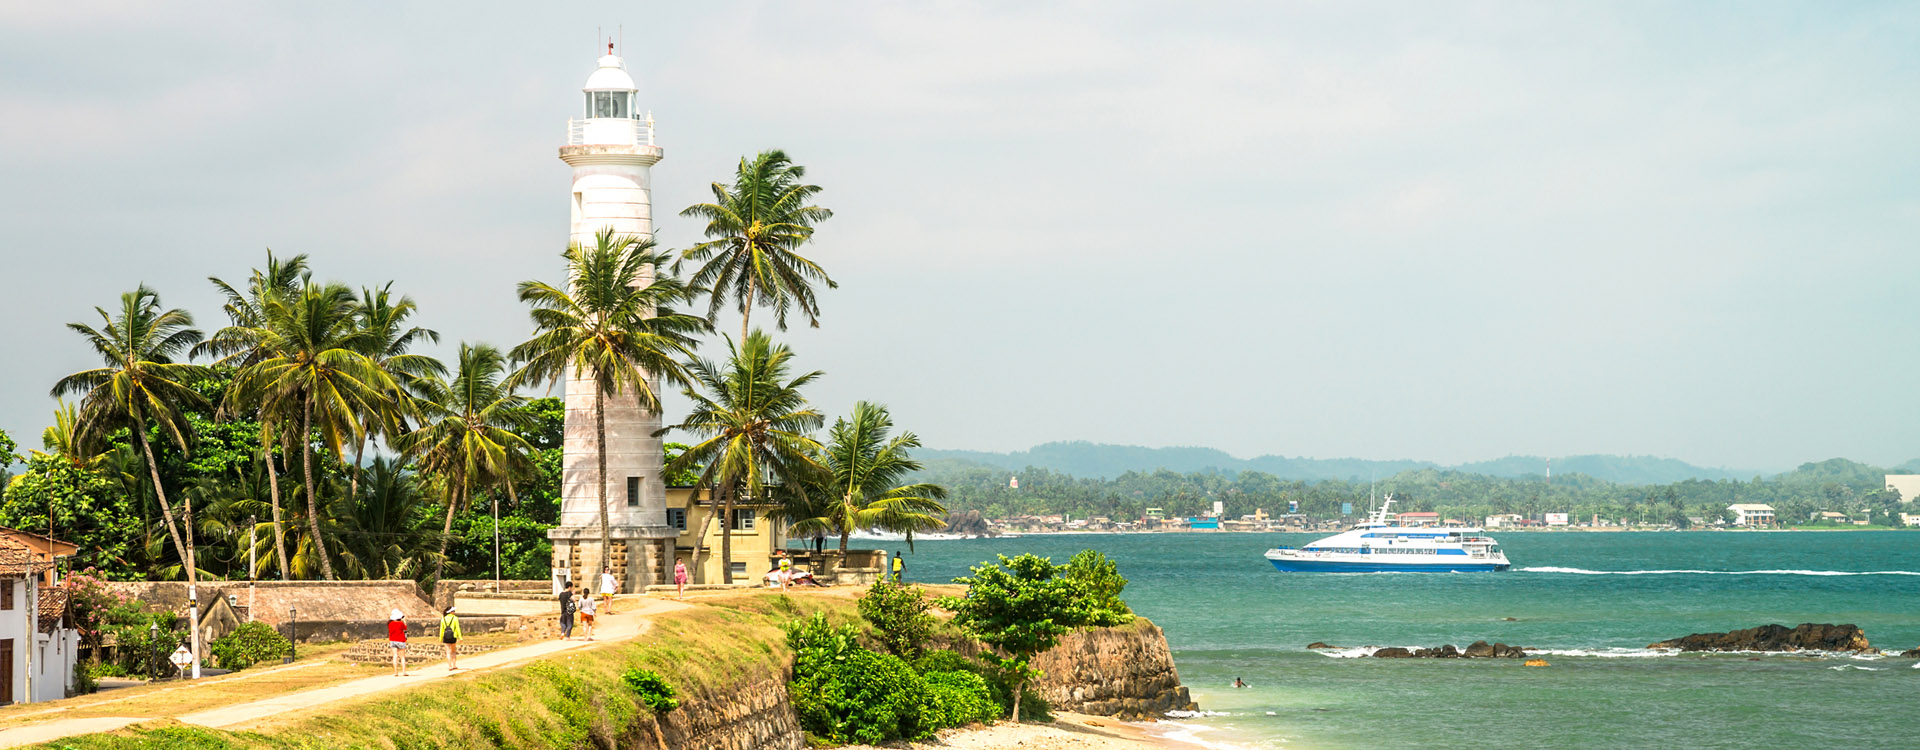 Sri Lanka. Galle. The Fort Galle. The lighthouse.